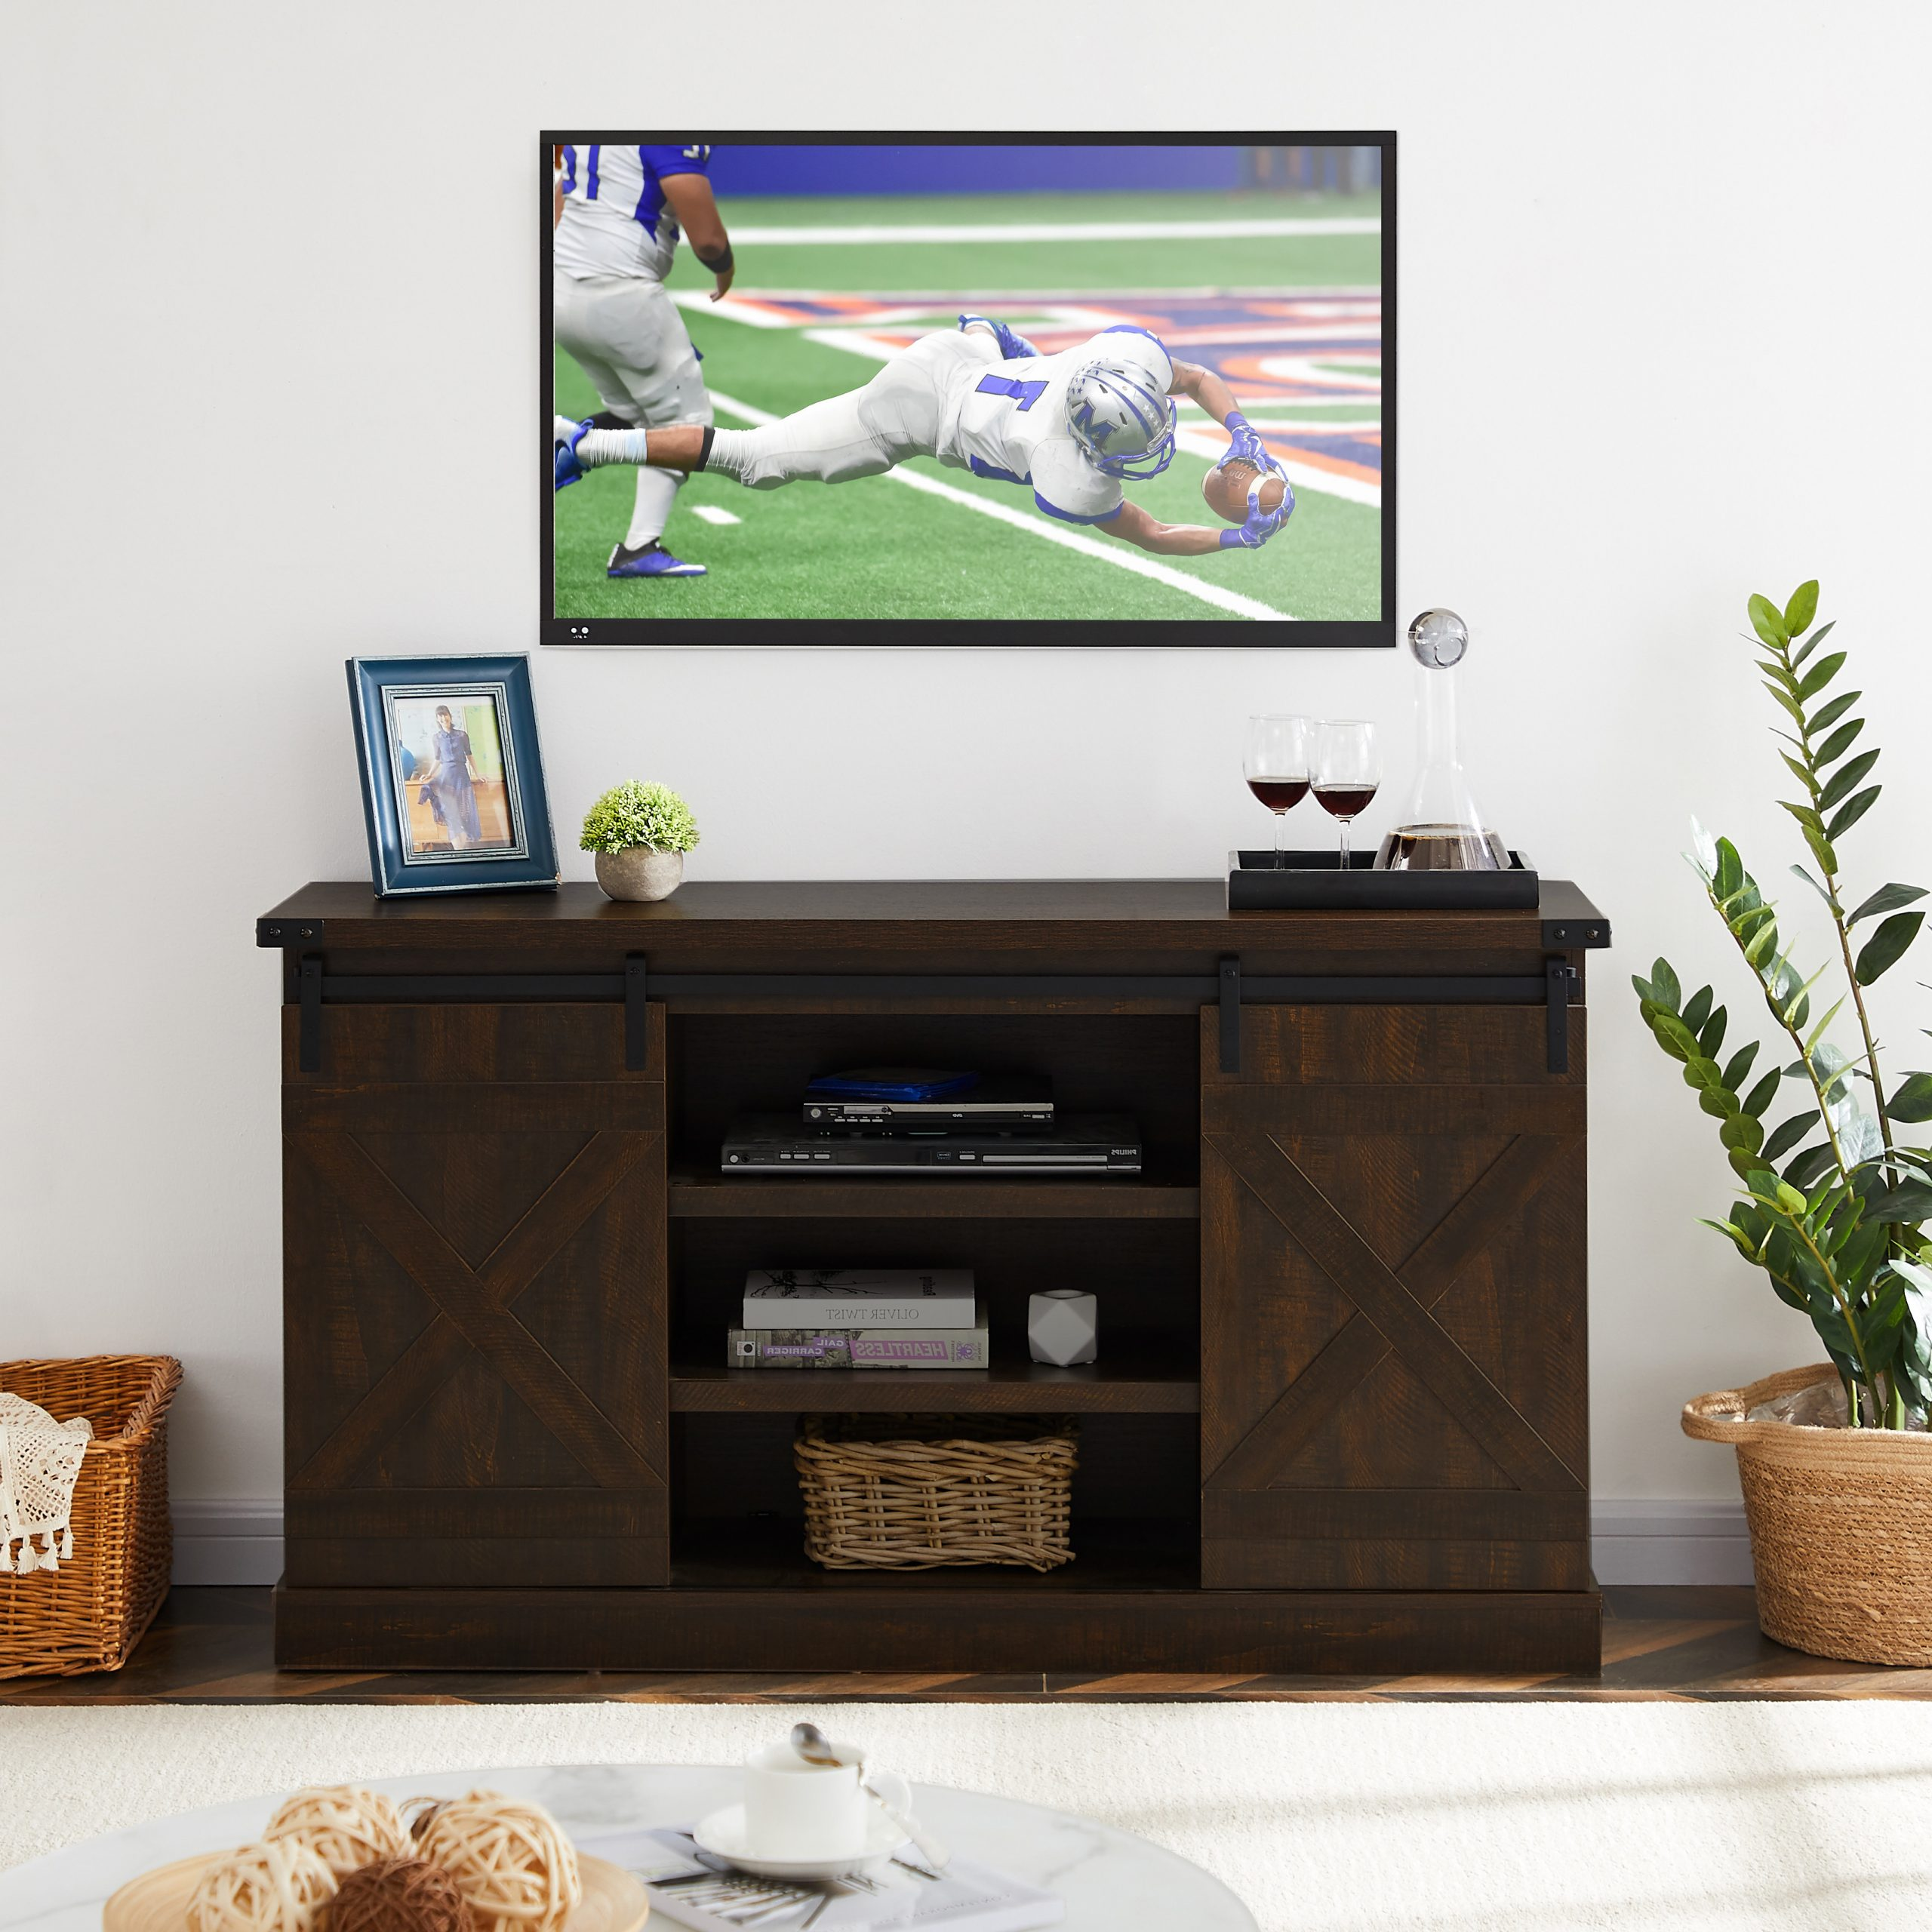 Tv Stand For 40 65 Inch Tv, Modern Farmhouse Tv Stand With Intended For Horizontal Or Vertical Storage Shelf Tv Stands (View 1 of 20)